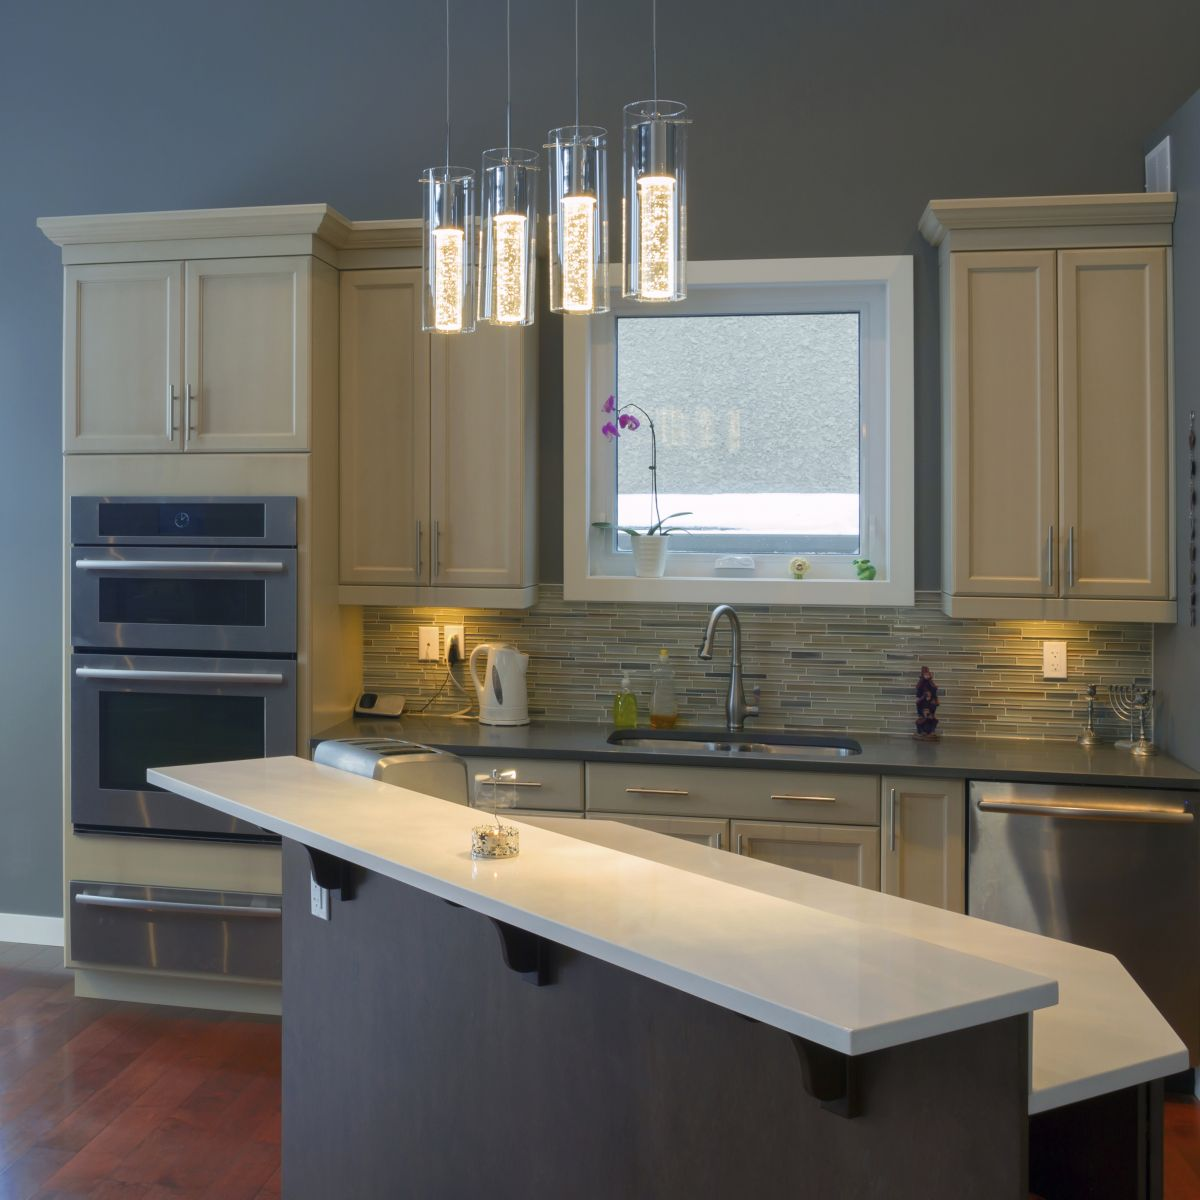 What Is The Cost To Reface Kitchen Cabinets: How Much Does Kitchen Cabinet Refacing Cost?